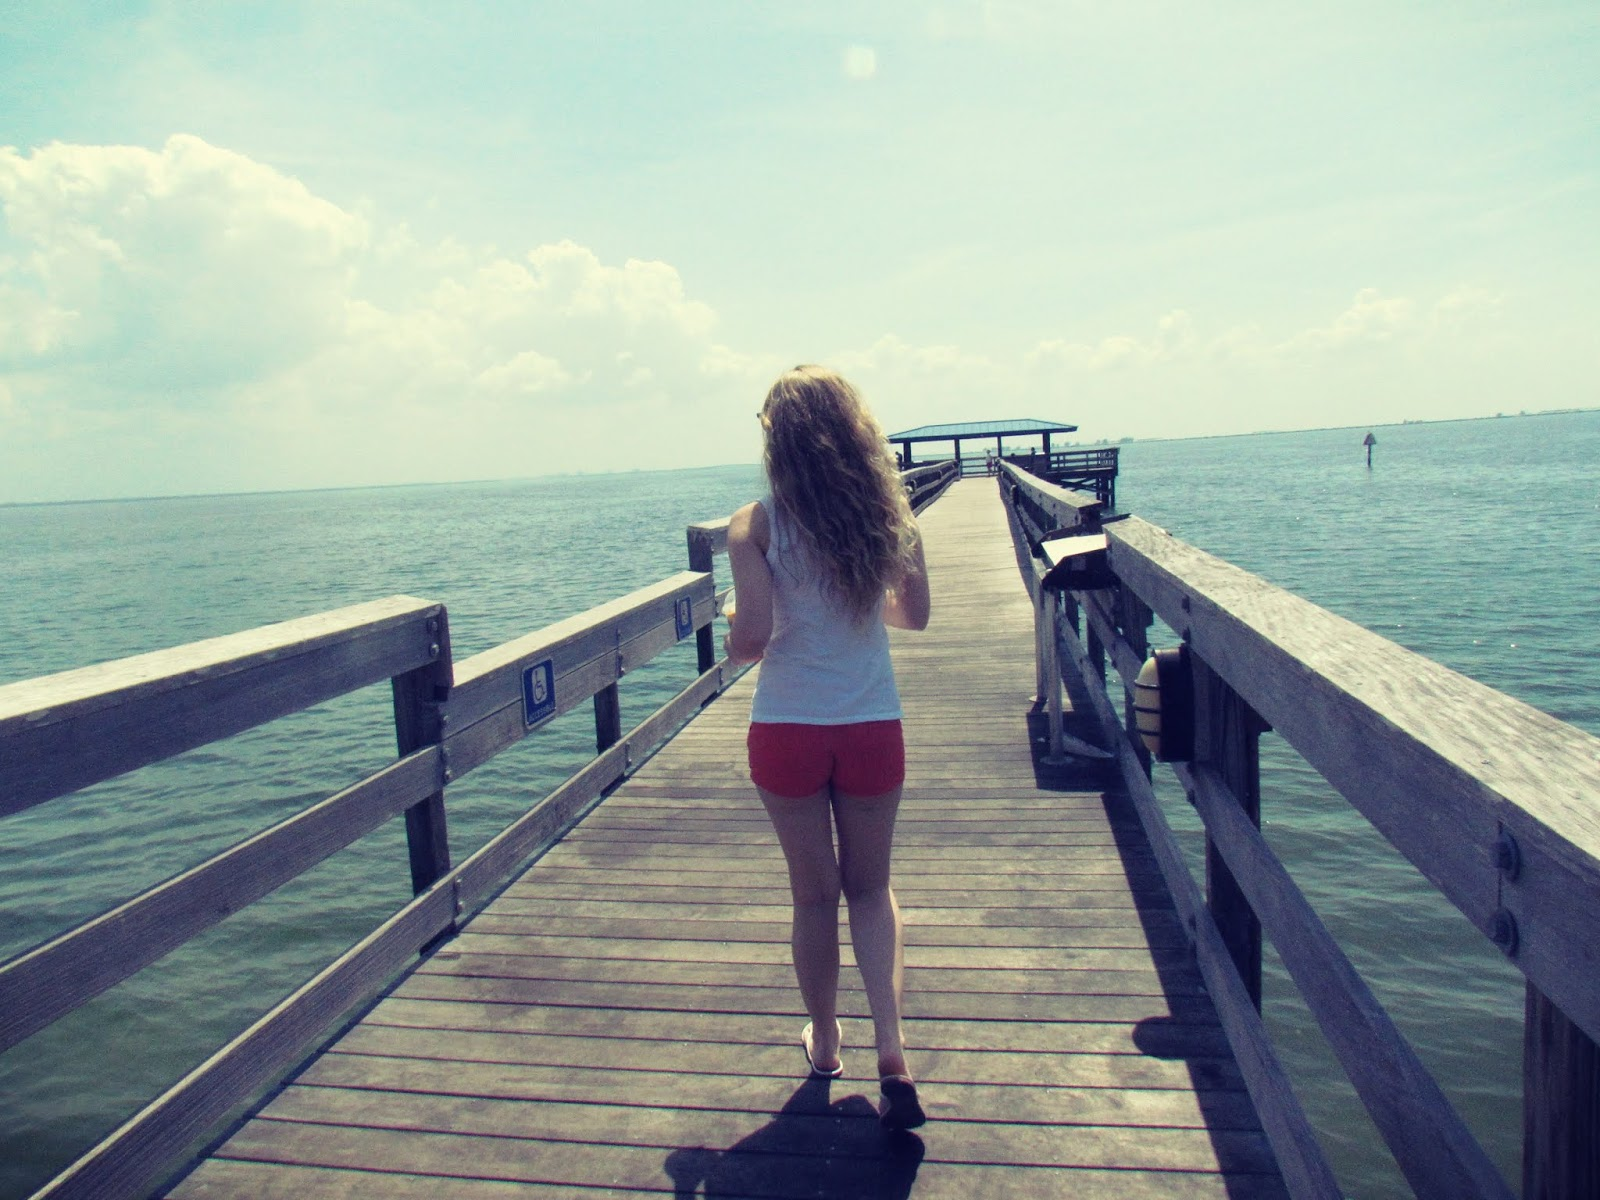 Young blonde woman running down the pier in Safety Harbor, Florida in Orange Shorts